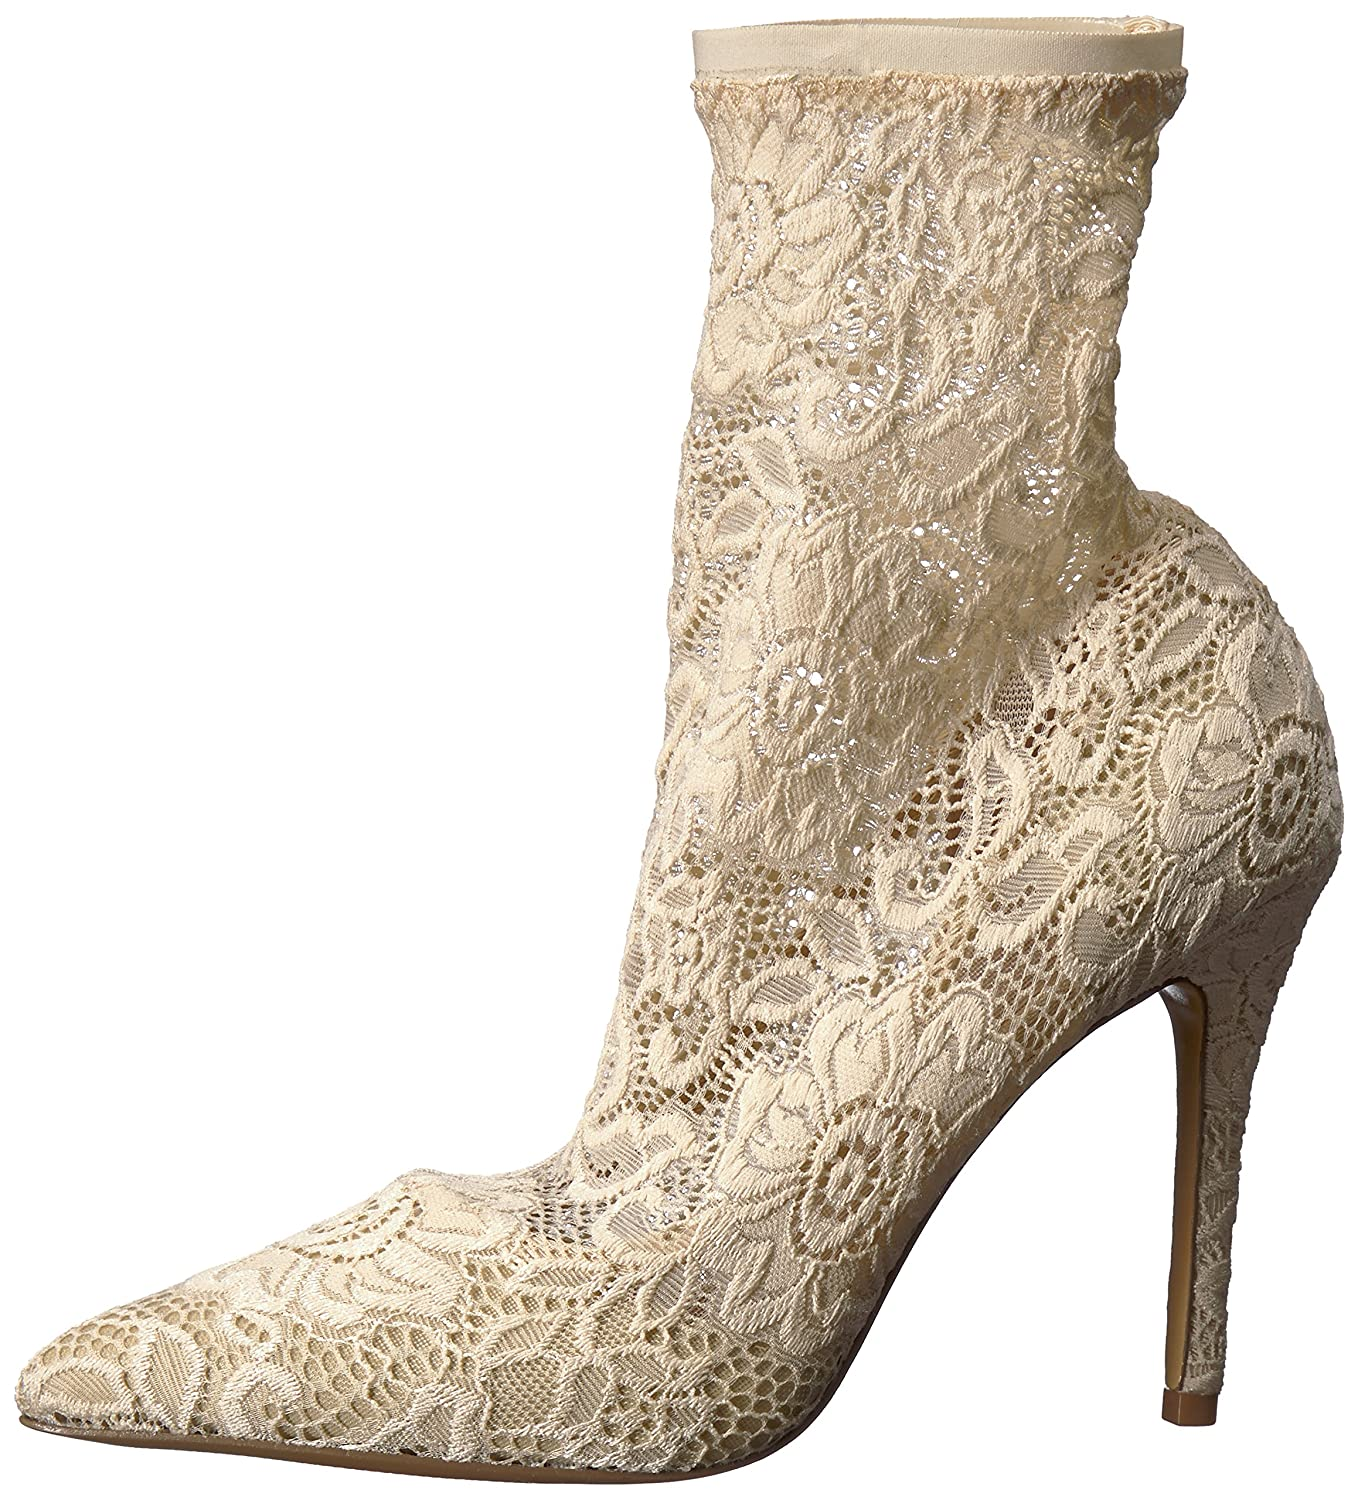 Charles by Charles David Women's Player Fashion Boot B075NSV8CT 9 B(M) US|Ivory